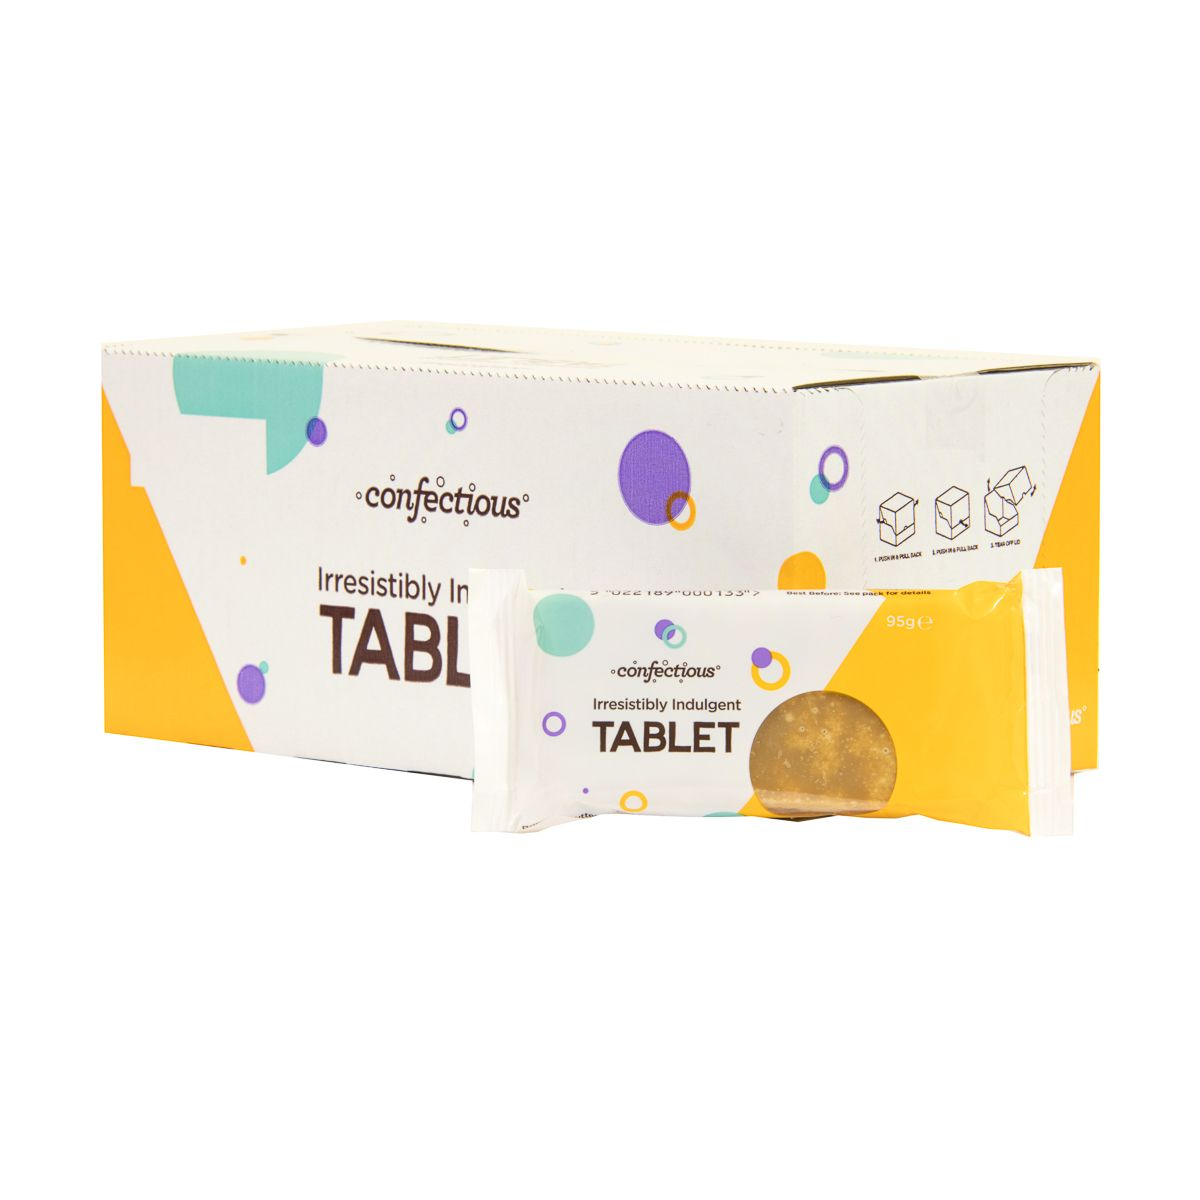 IRRESISTIBLY INDULGENT TABLET (24 X 95G)